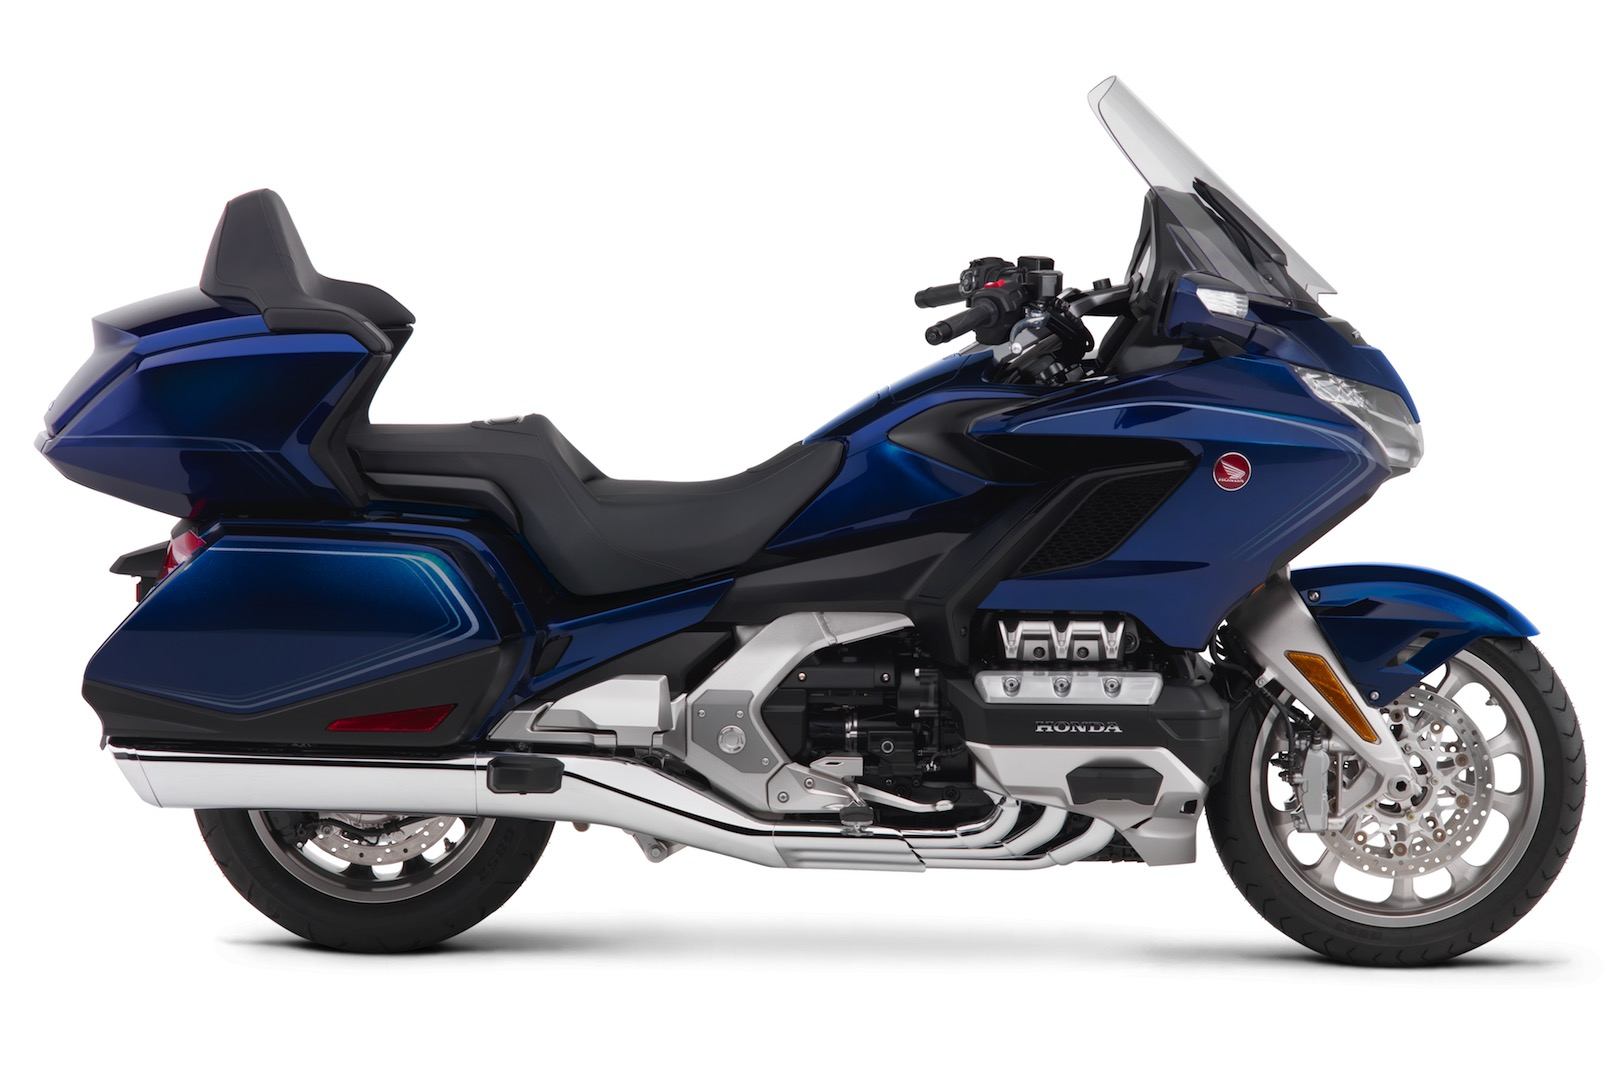 2018 honda gold wing first look 18 fast facts. Black Bedroom Furniture Sets. Home Design Ideas